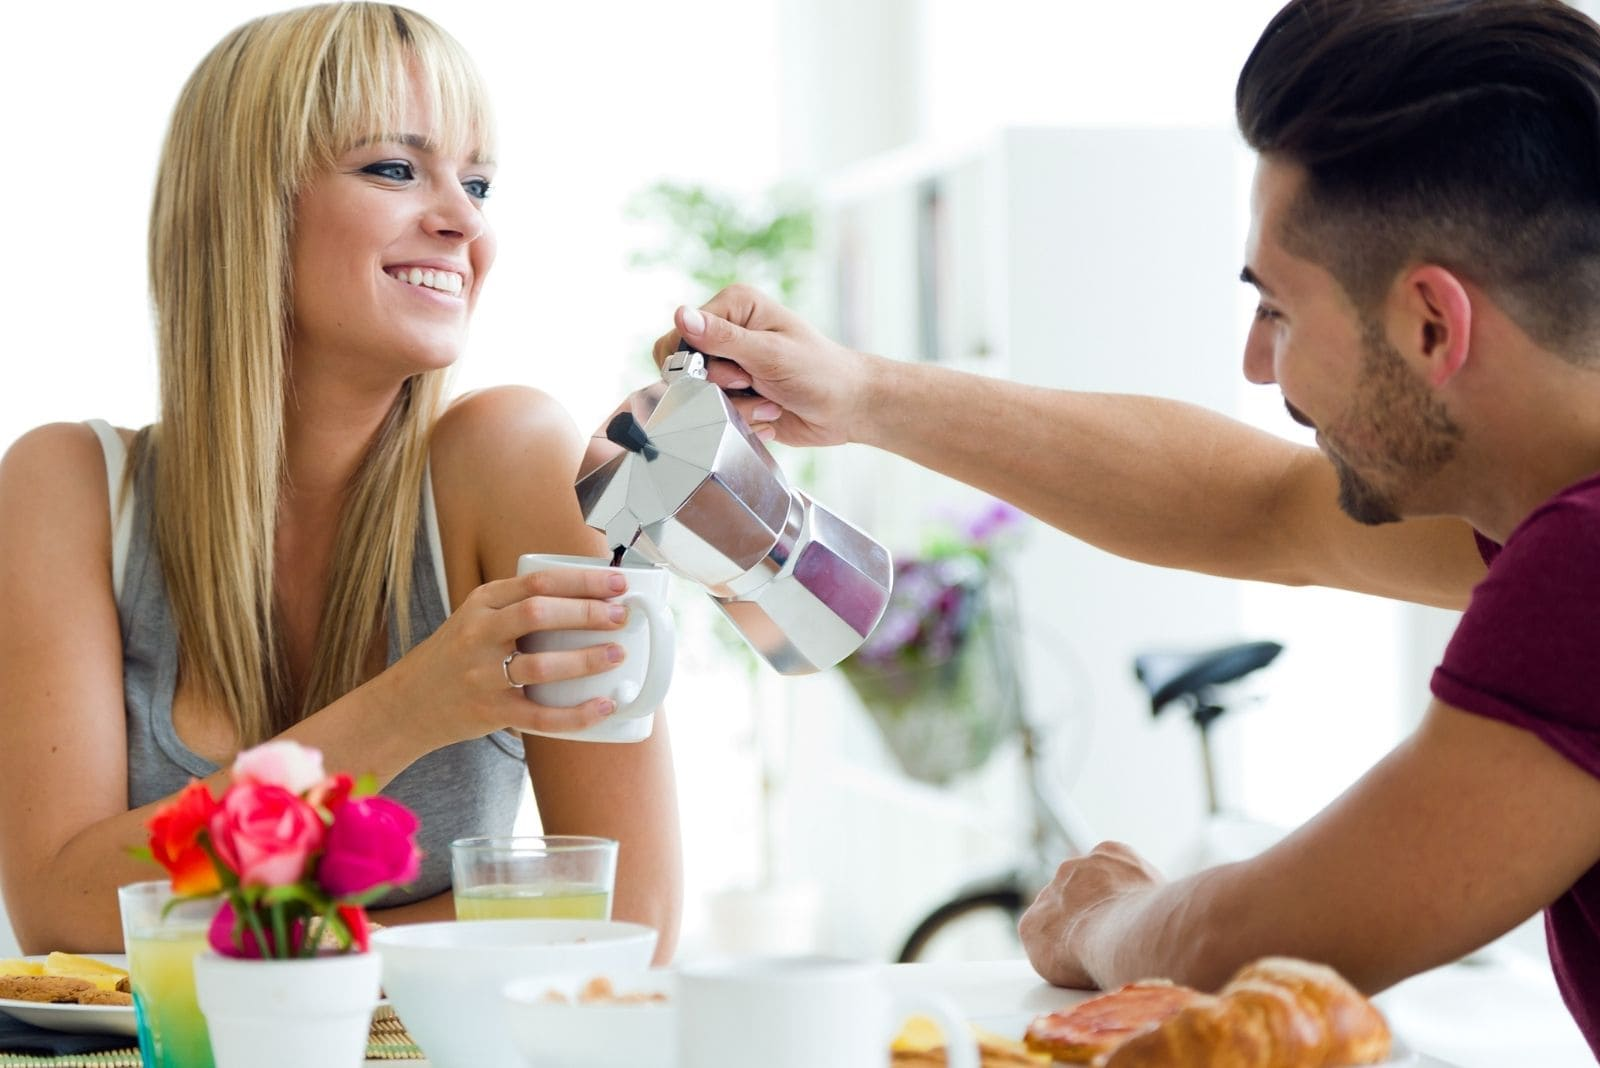 man pouring in coffee in the the cup of the woman during breakfast